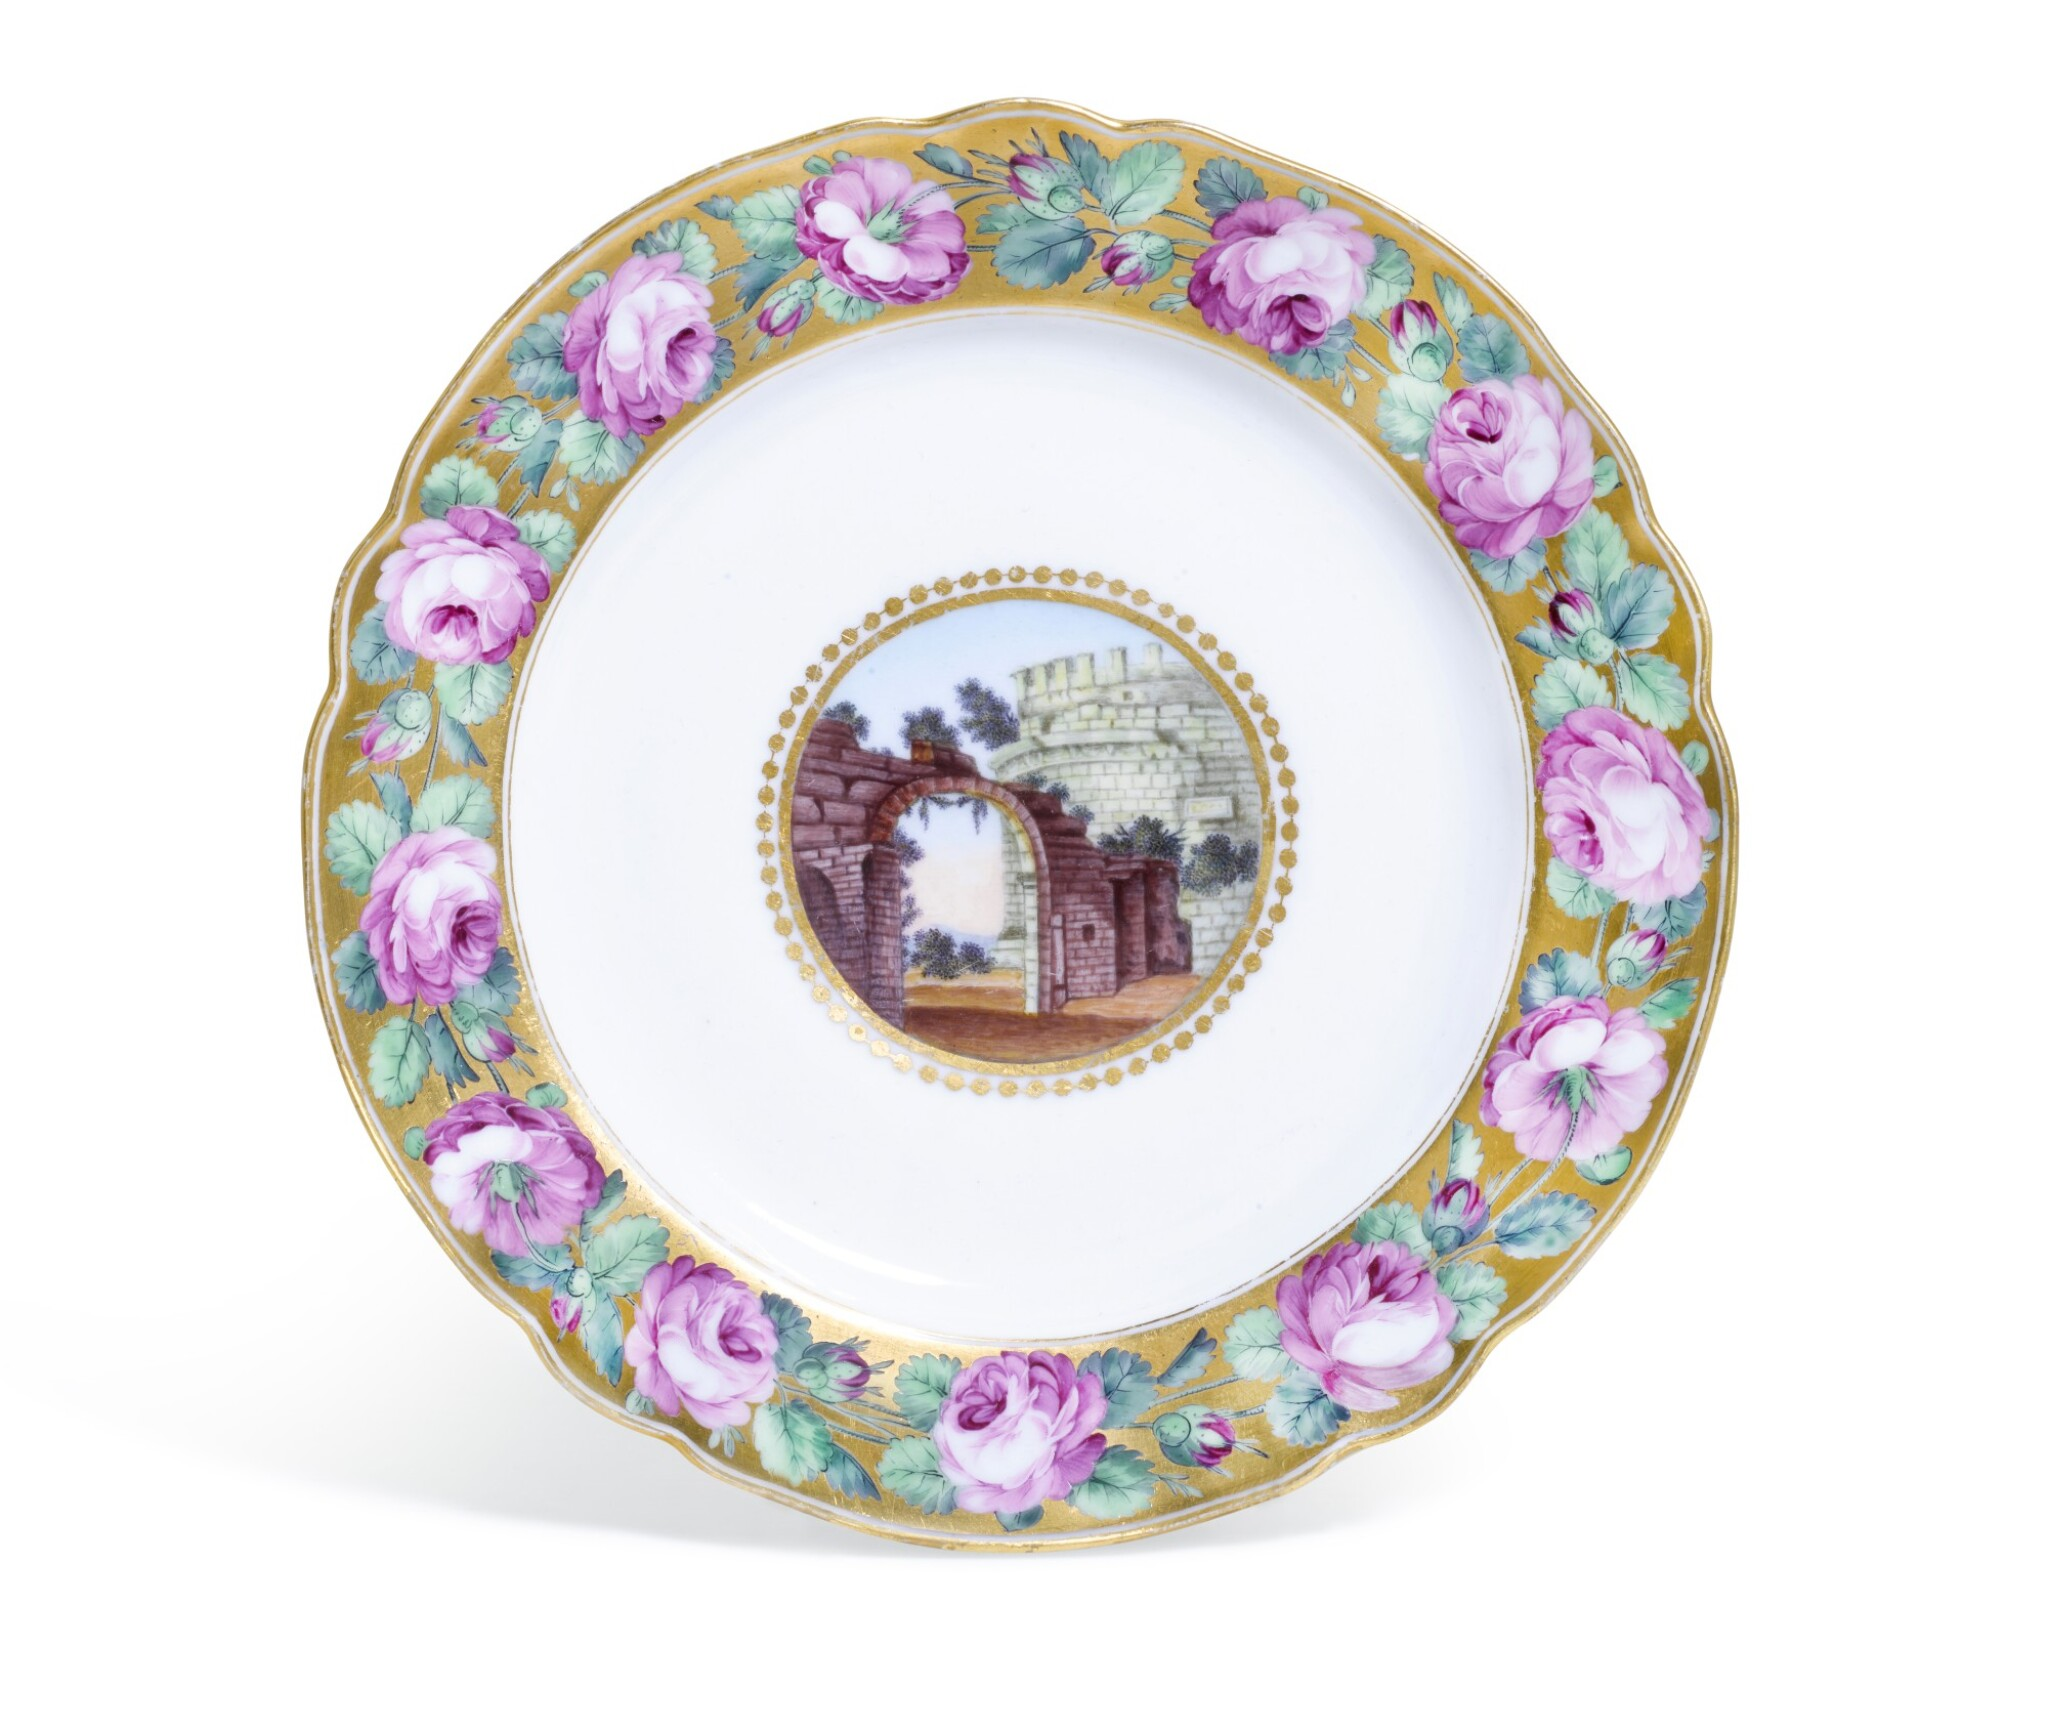 View full screen - View 1 of Lot 170. A PORCELAIN PLATE FROM THE DOWRY SERVICE OF GRAND DUCHESS ALEXANDRA PAVLOVNA, IMPERIAL PORCELAIN FACTORY, ST PETERSBURG, PERIOD OF CATHERINE II (1762-1796).